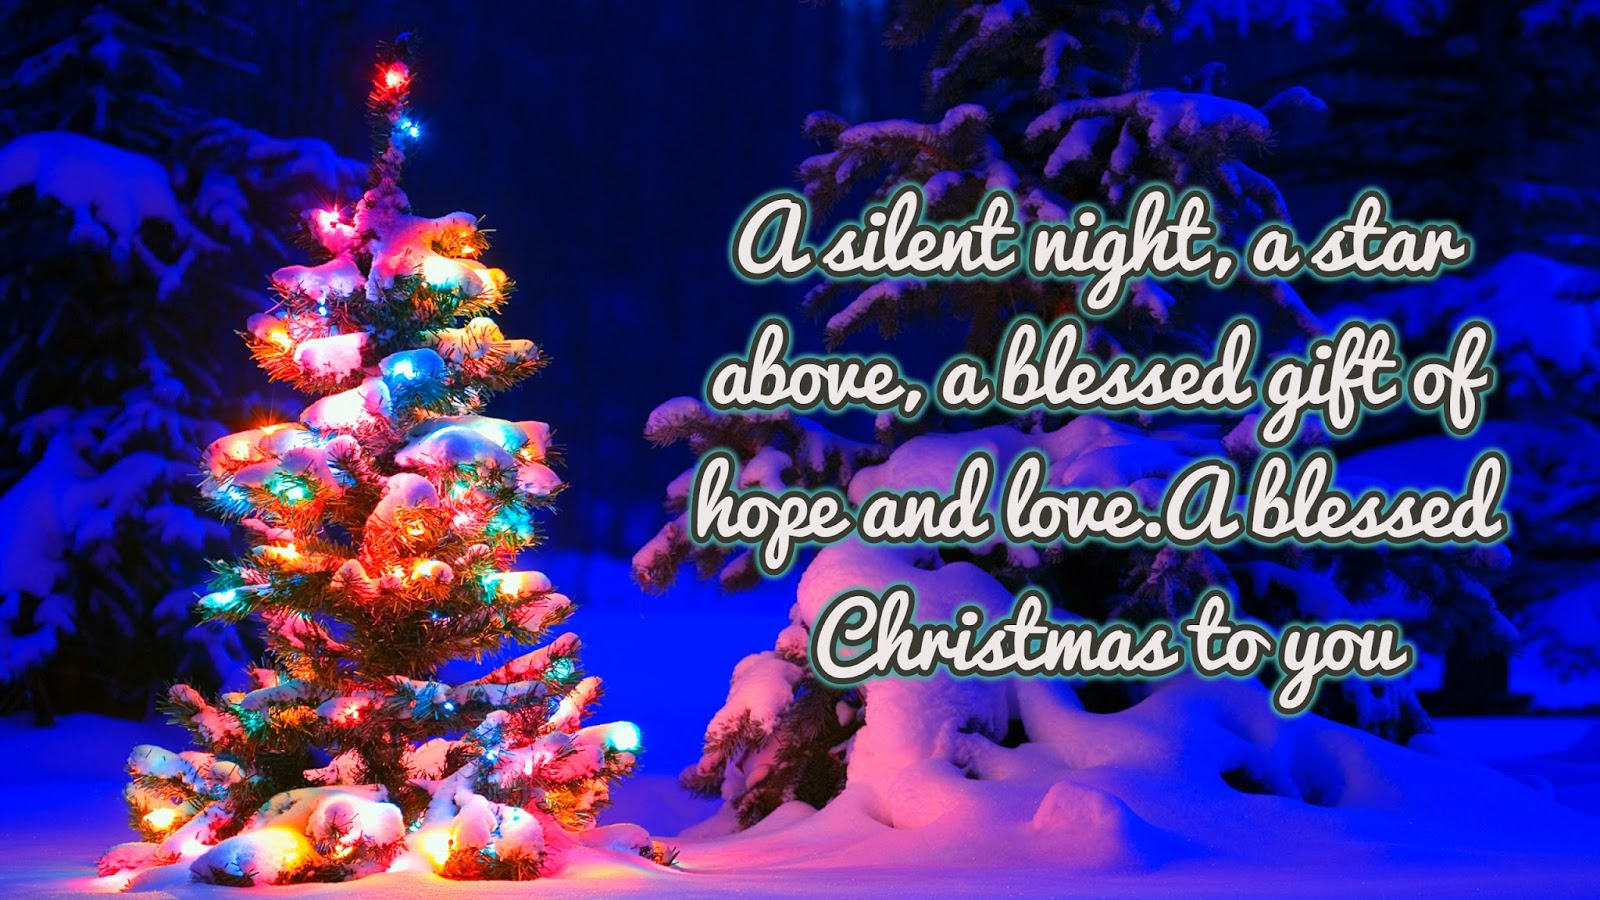 Best Christmas Greetings Merry Christmas Wishes Images Merry